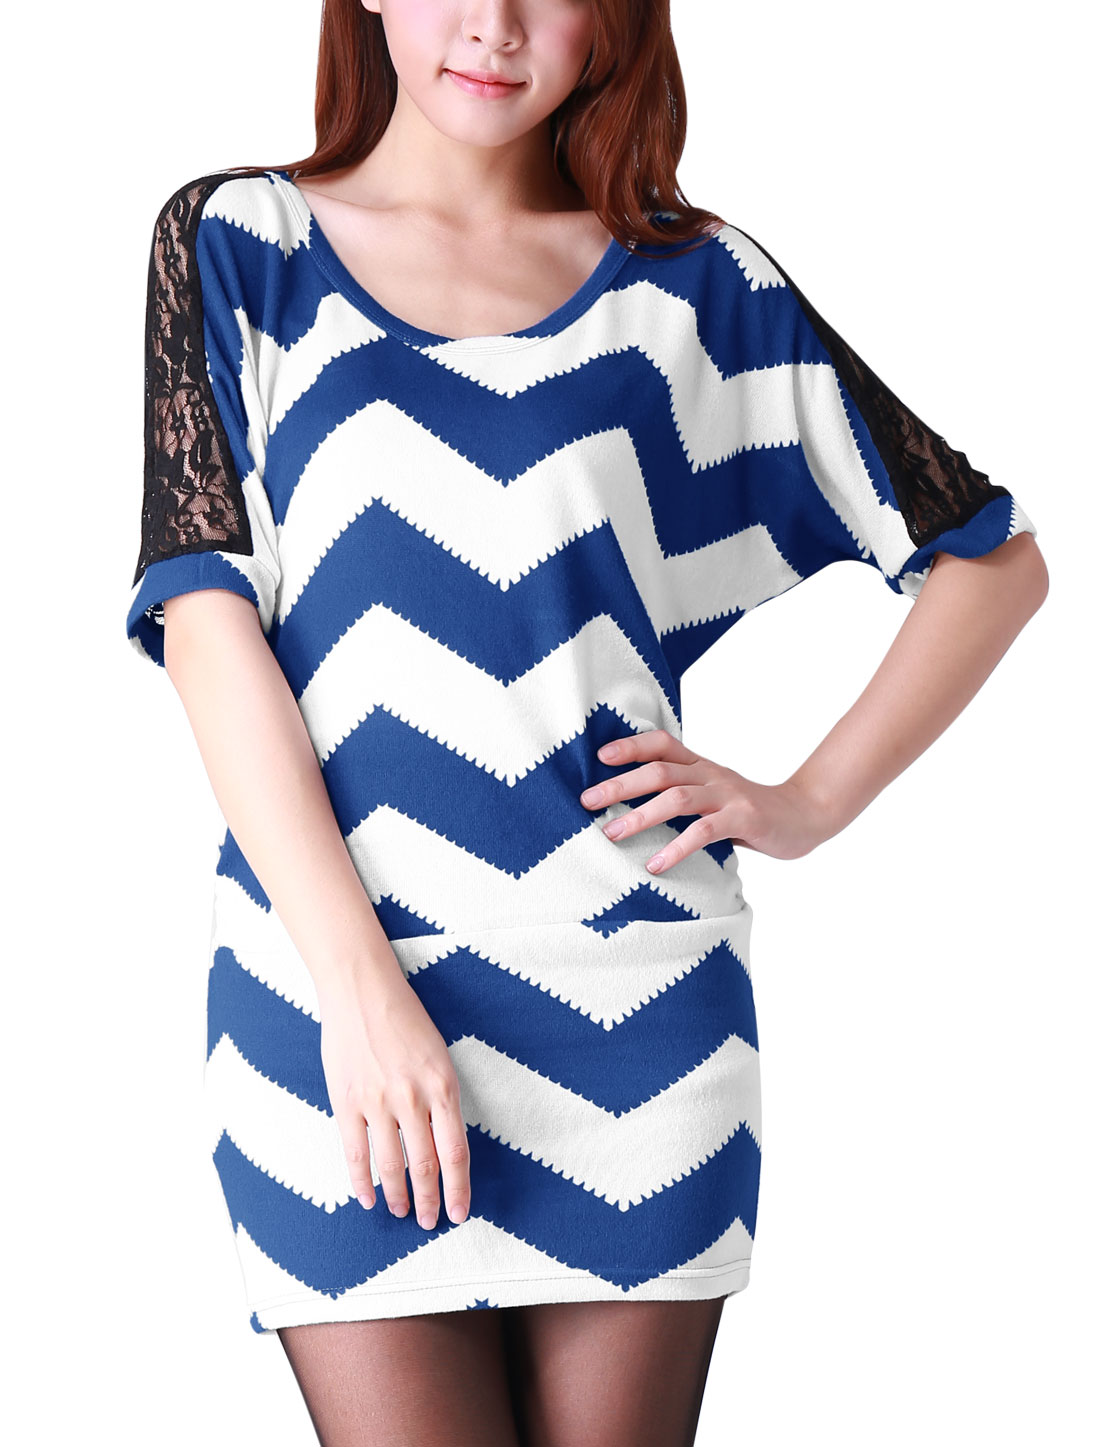 Ladies Zigzag Pattern Half Batwing Sleeves Royalblue White Tunic Top 1X